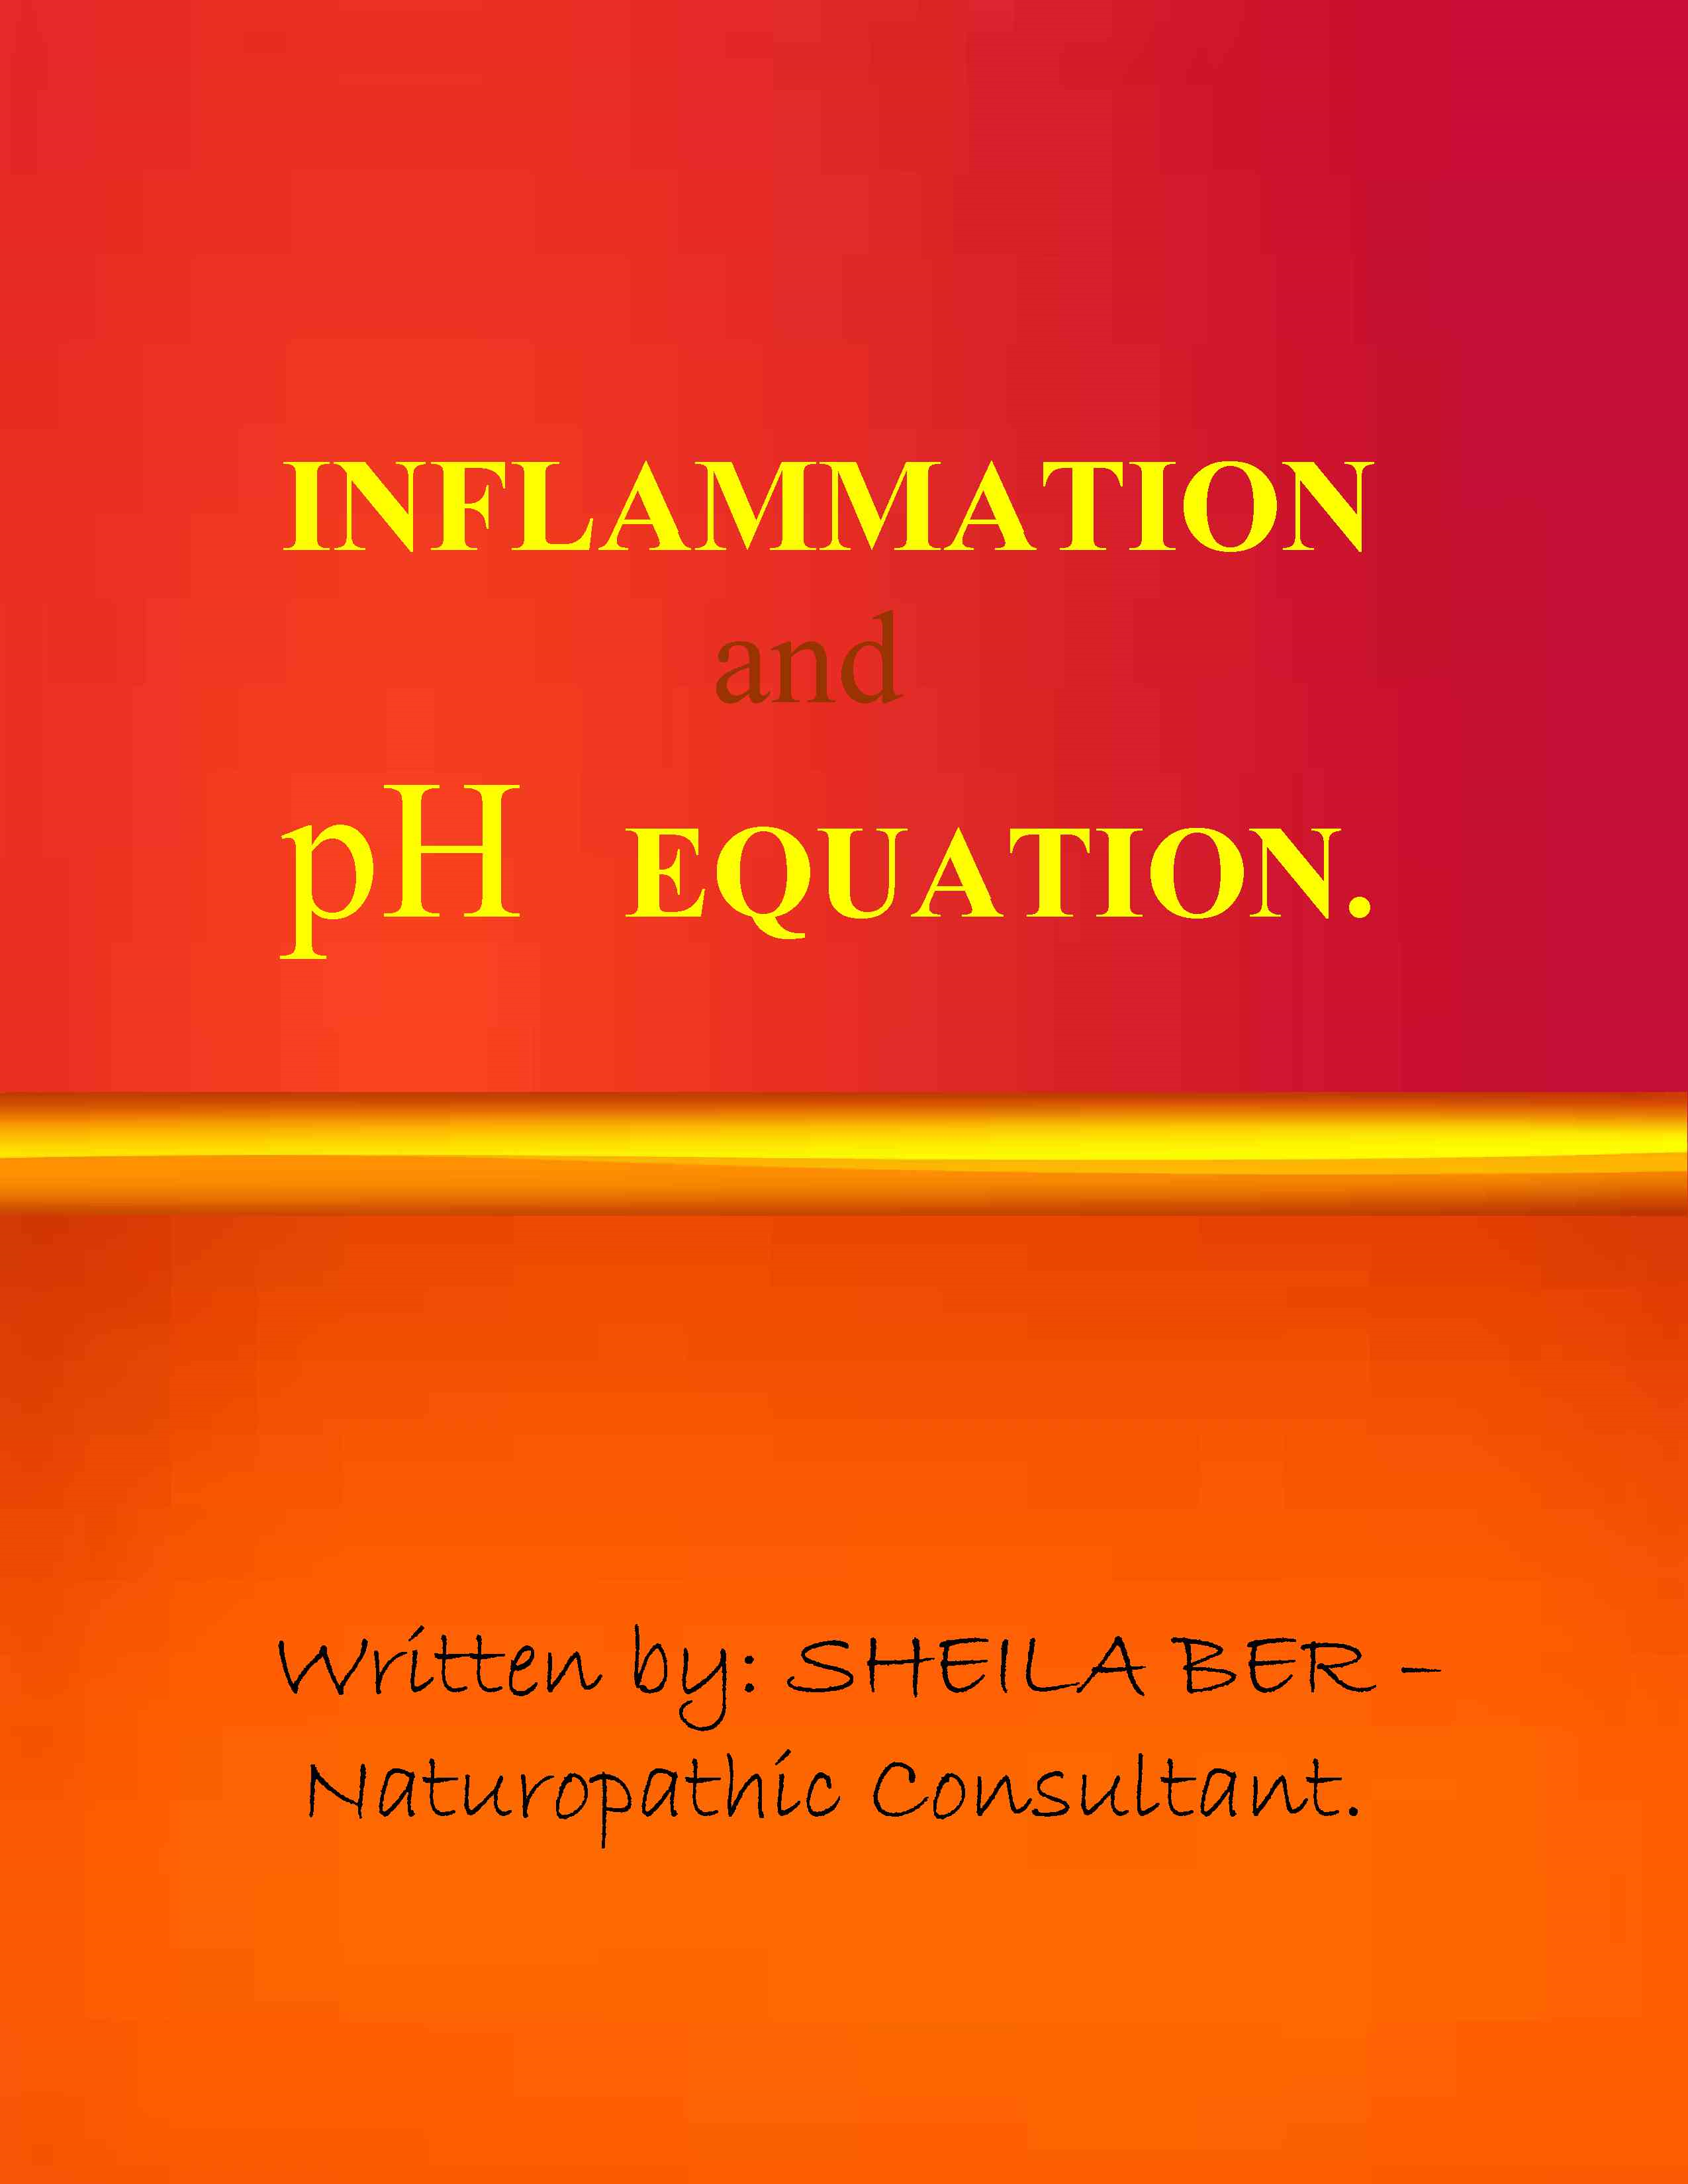 INFLAMMATION and pH EQUATION. Written by SHEILA BER.